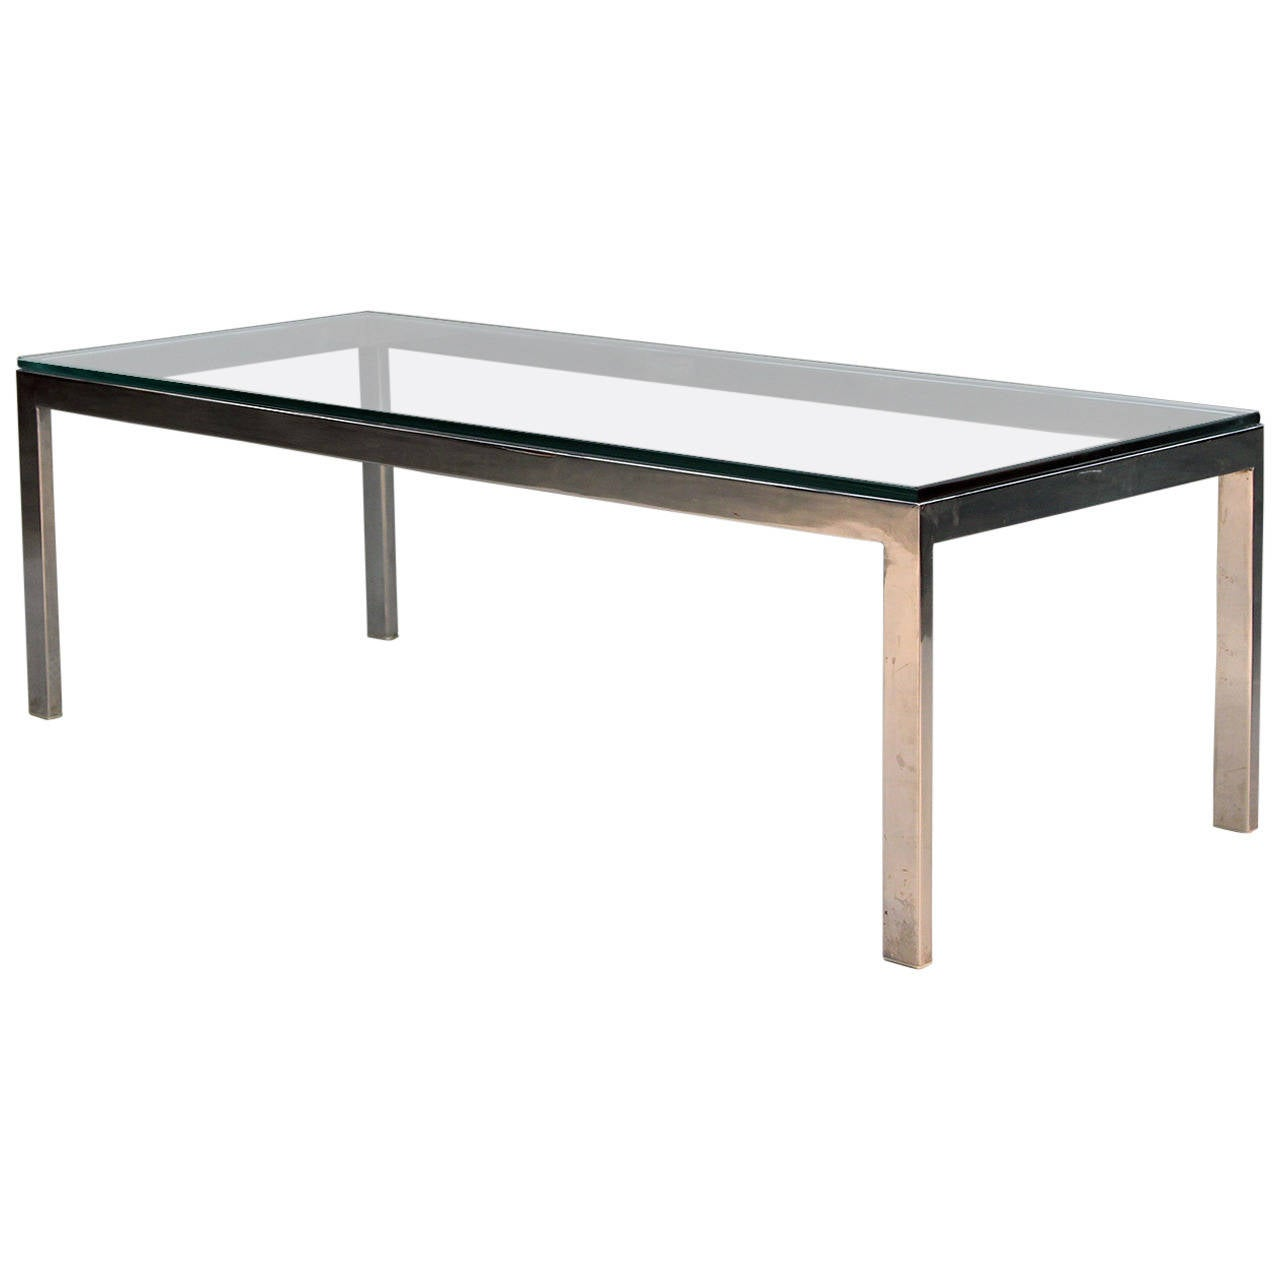 Chrome and glass vintage modern coffee table at 1stdibs Glass contemporary coffee table